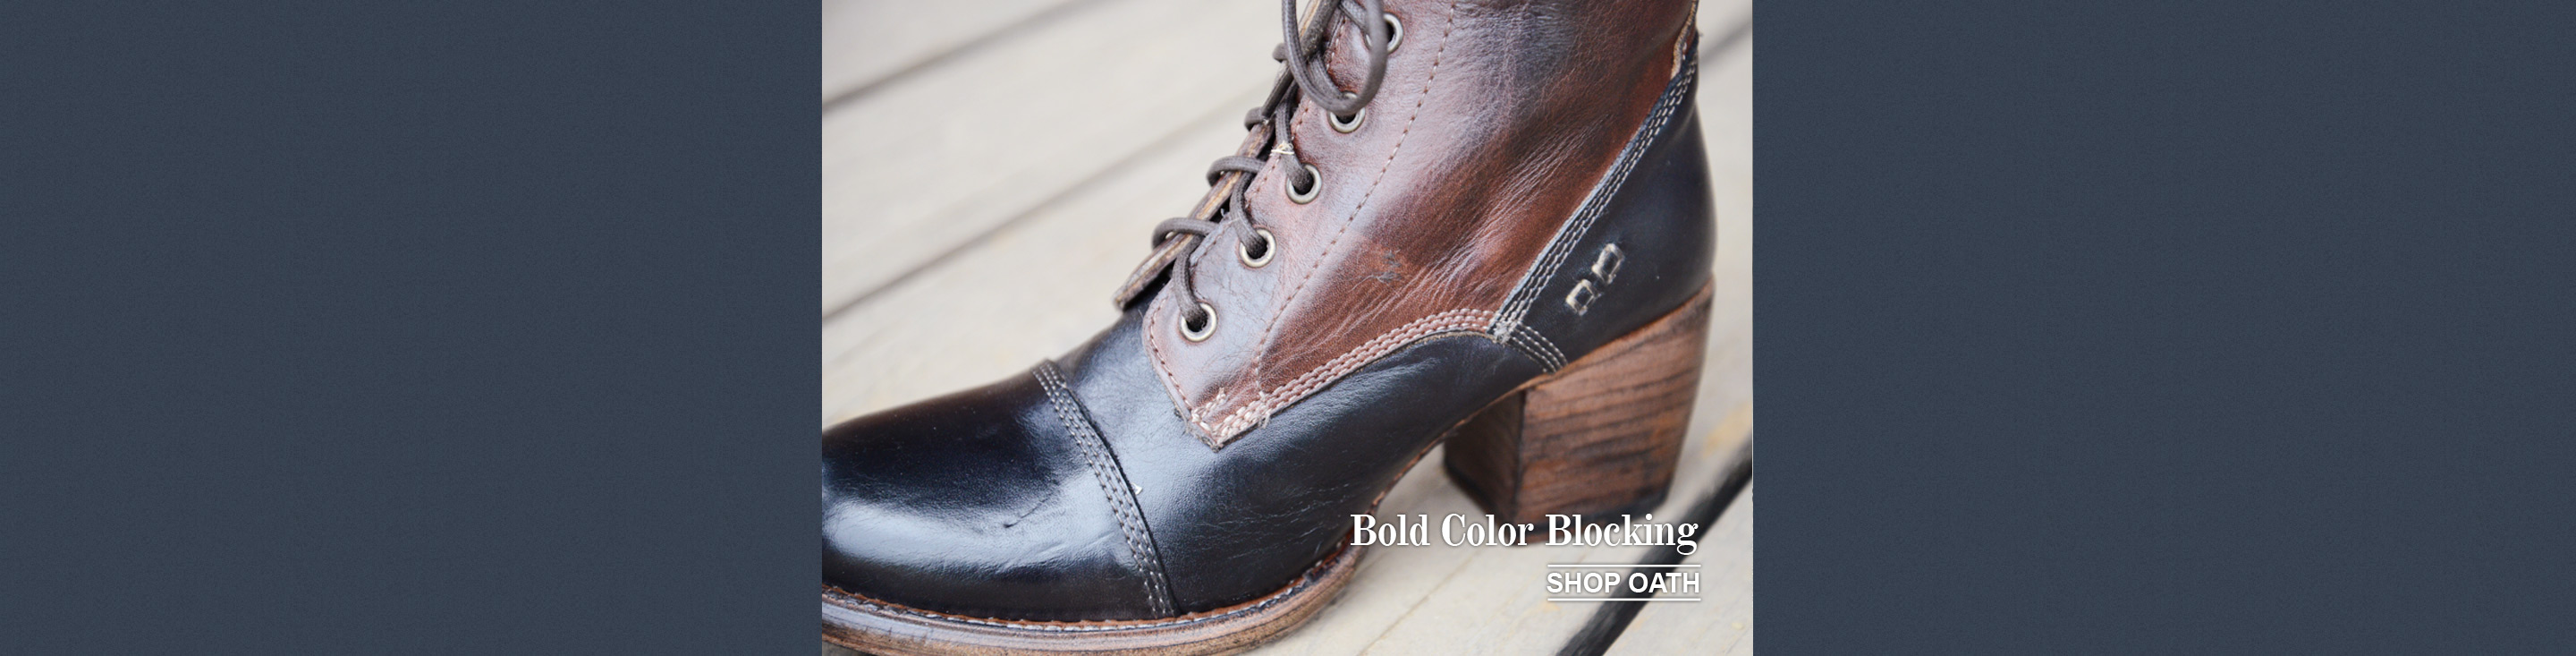 Bed|Stu Handcrafted Boots, Shoes, and Accessories